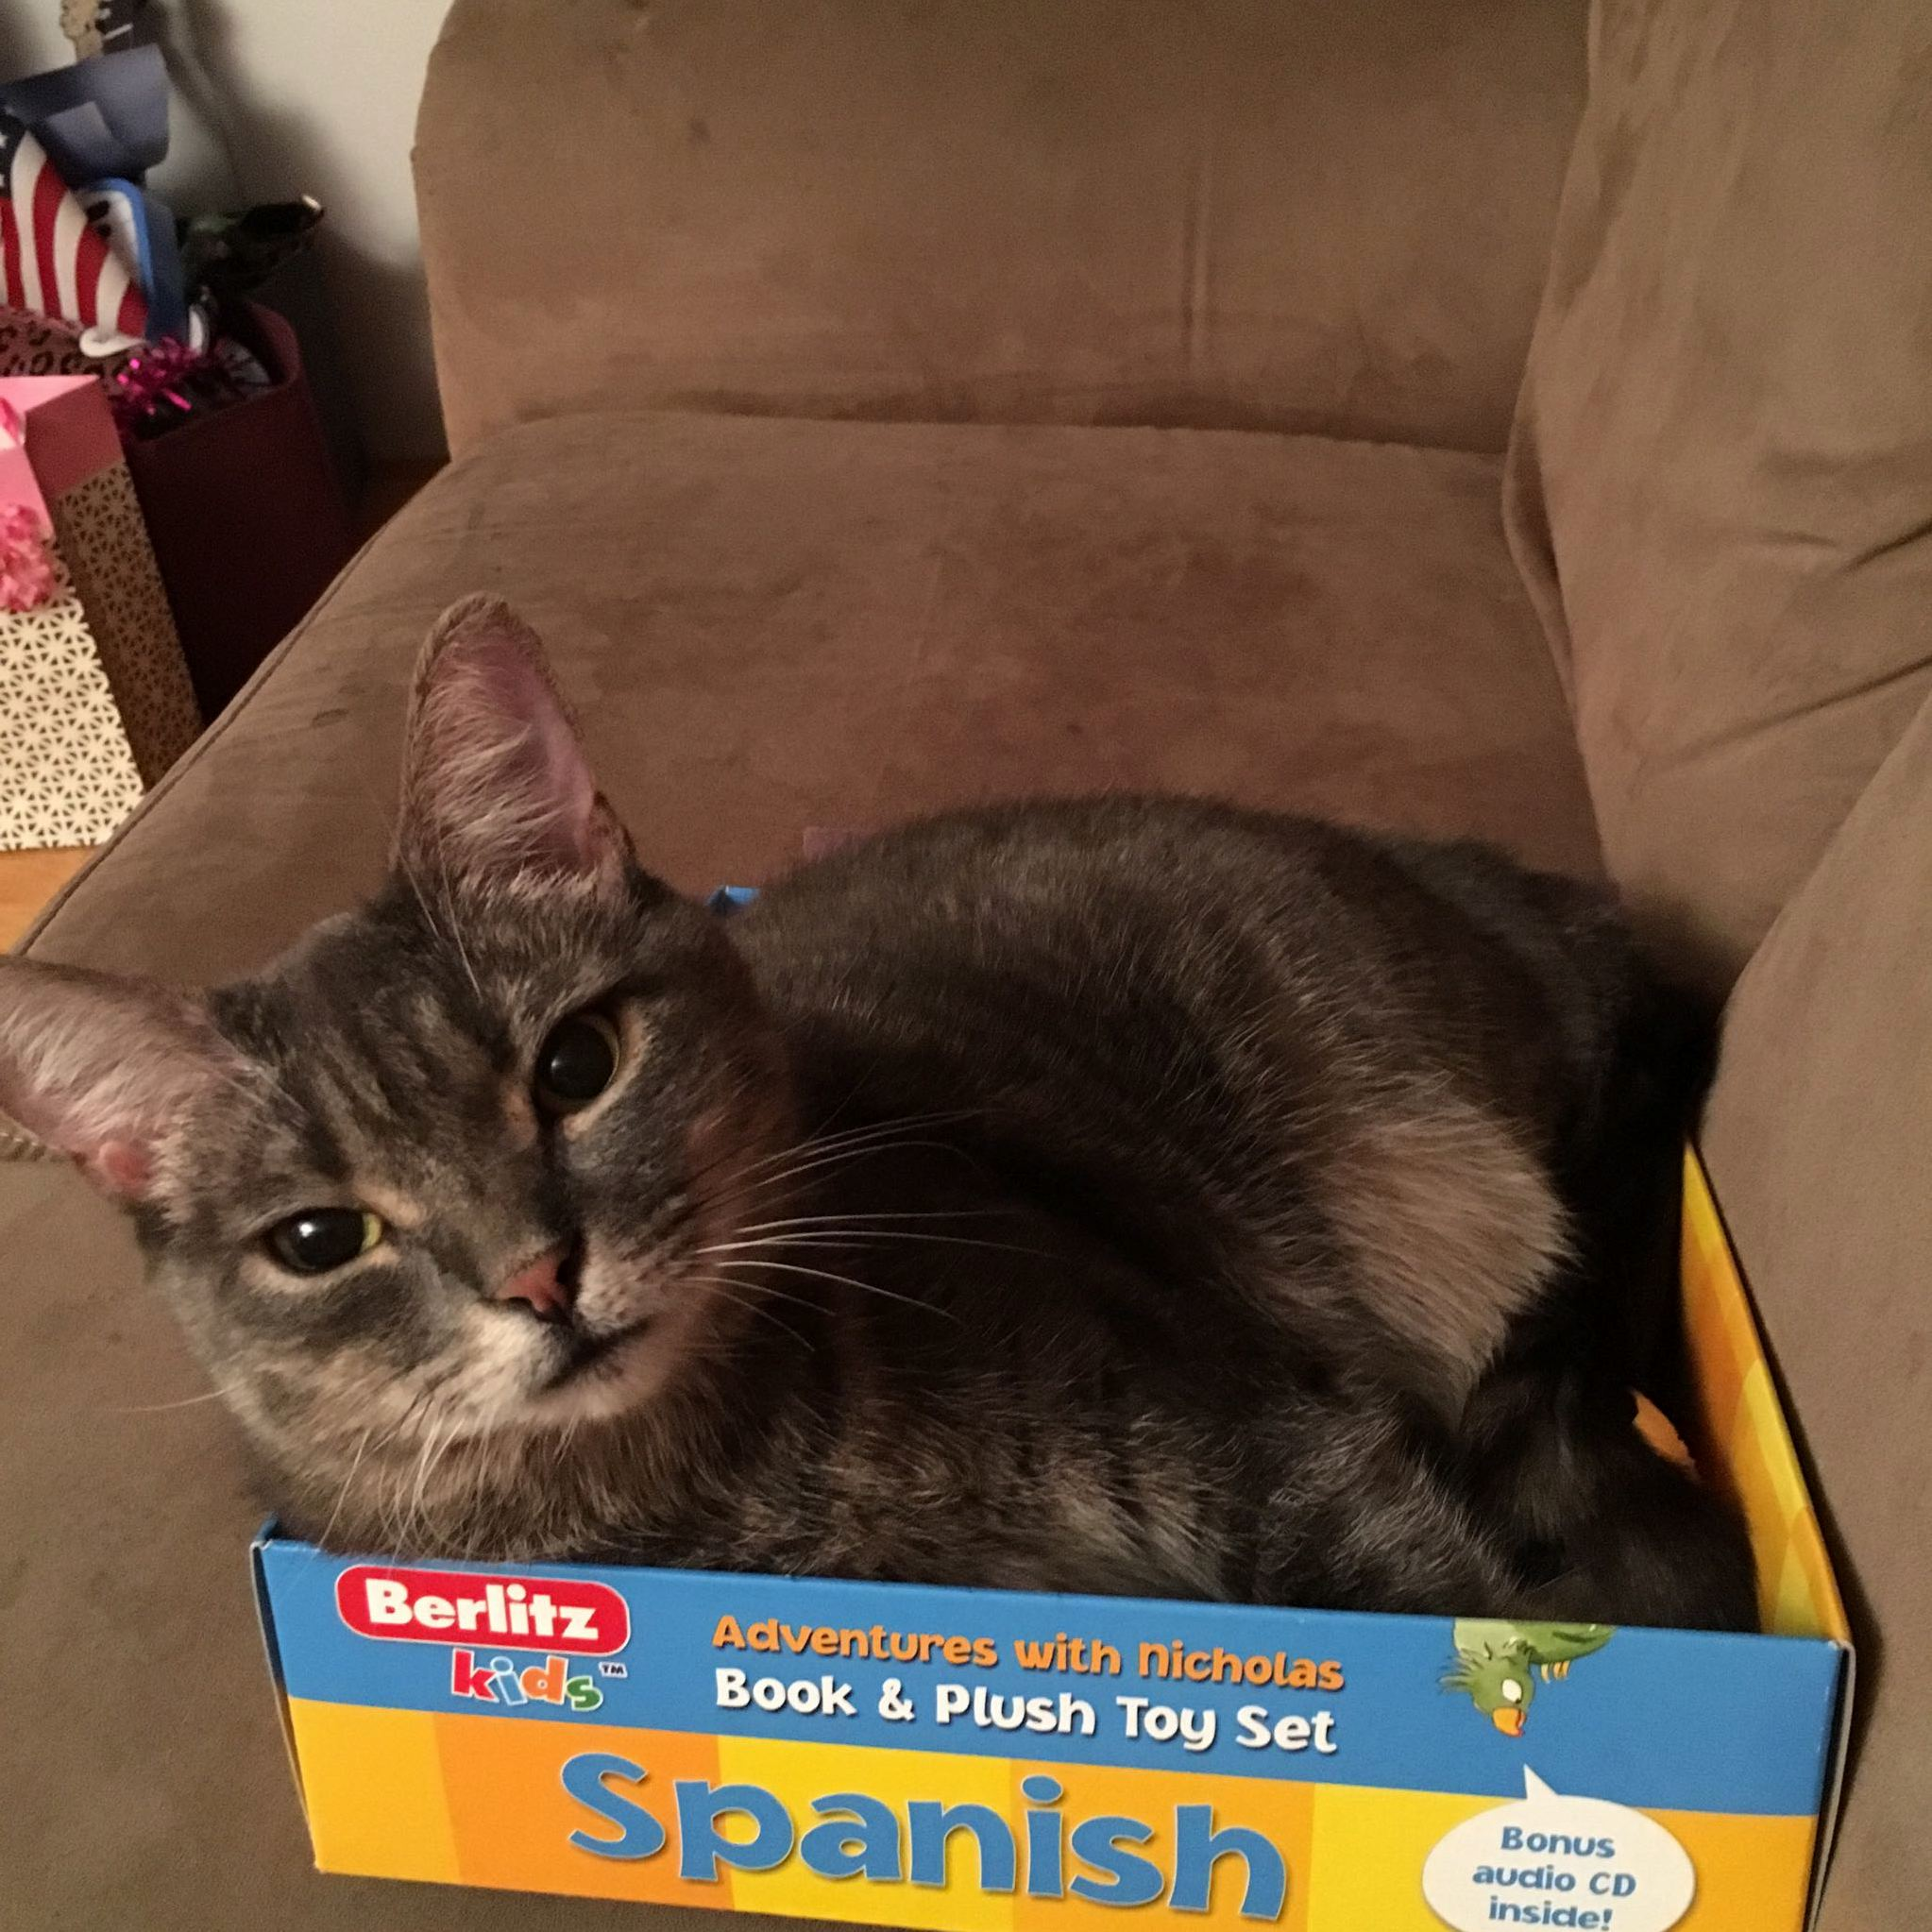 She wants to learn spanish